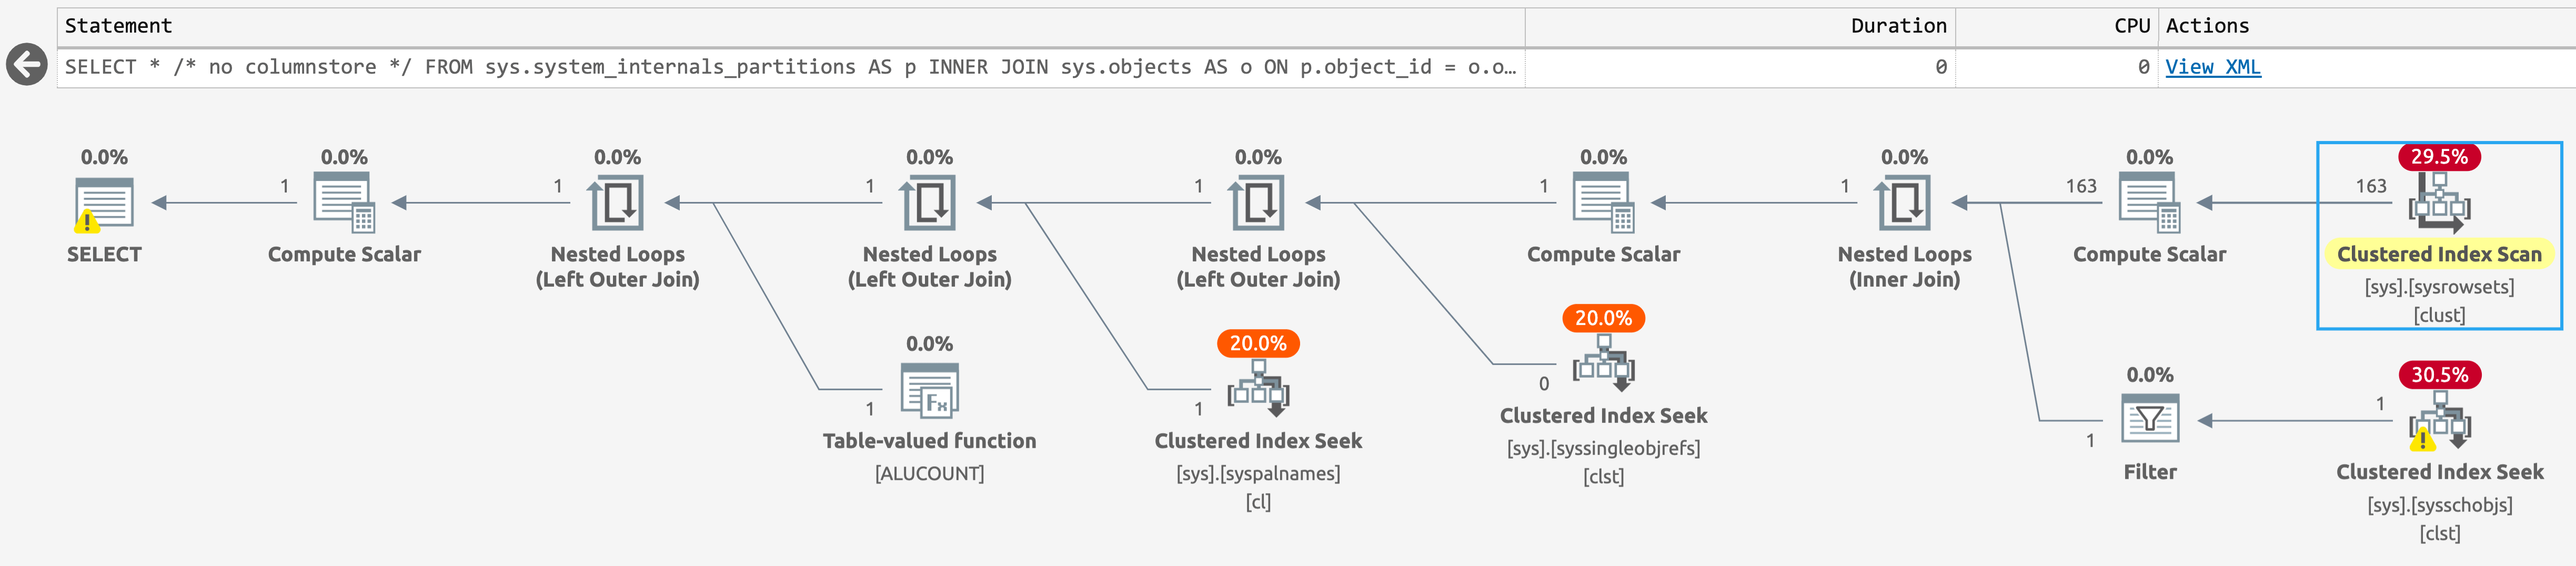 Plan for sys.system_internals_partitions, with no columnstore indexes present